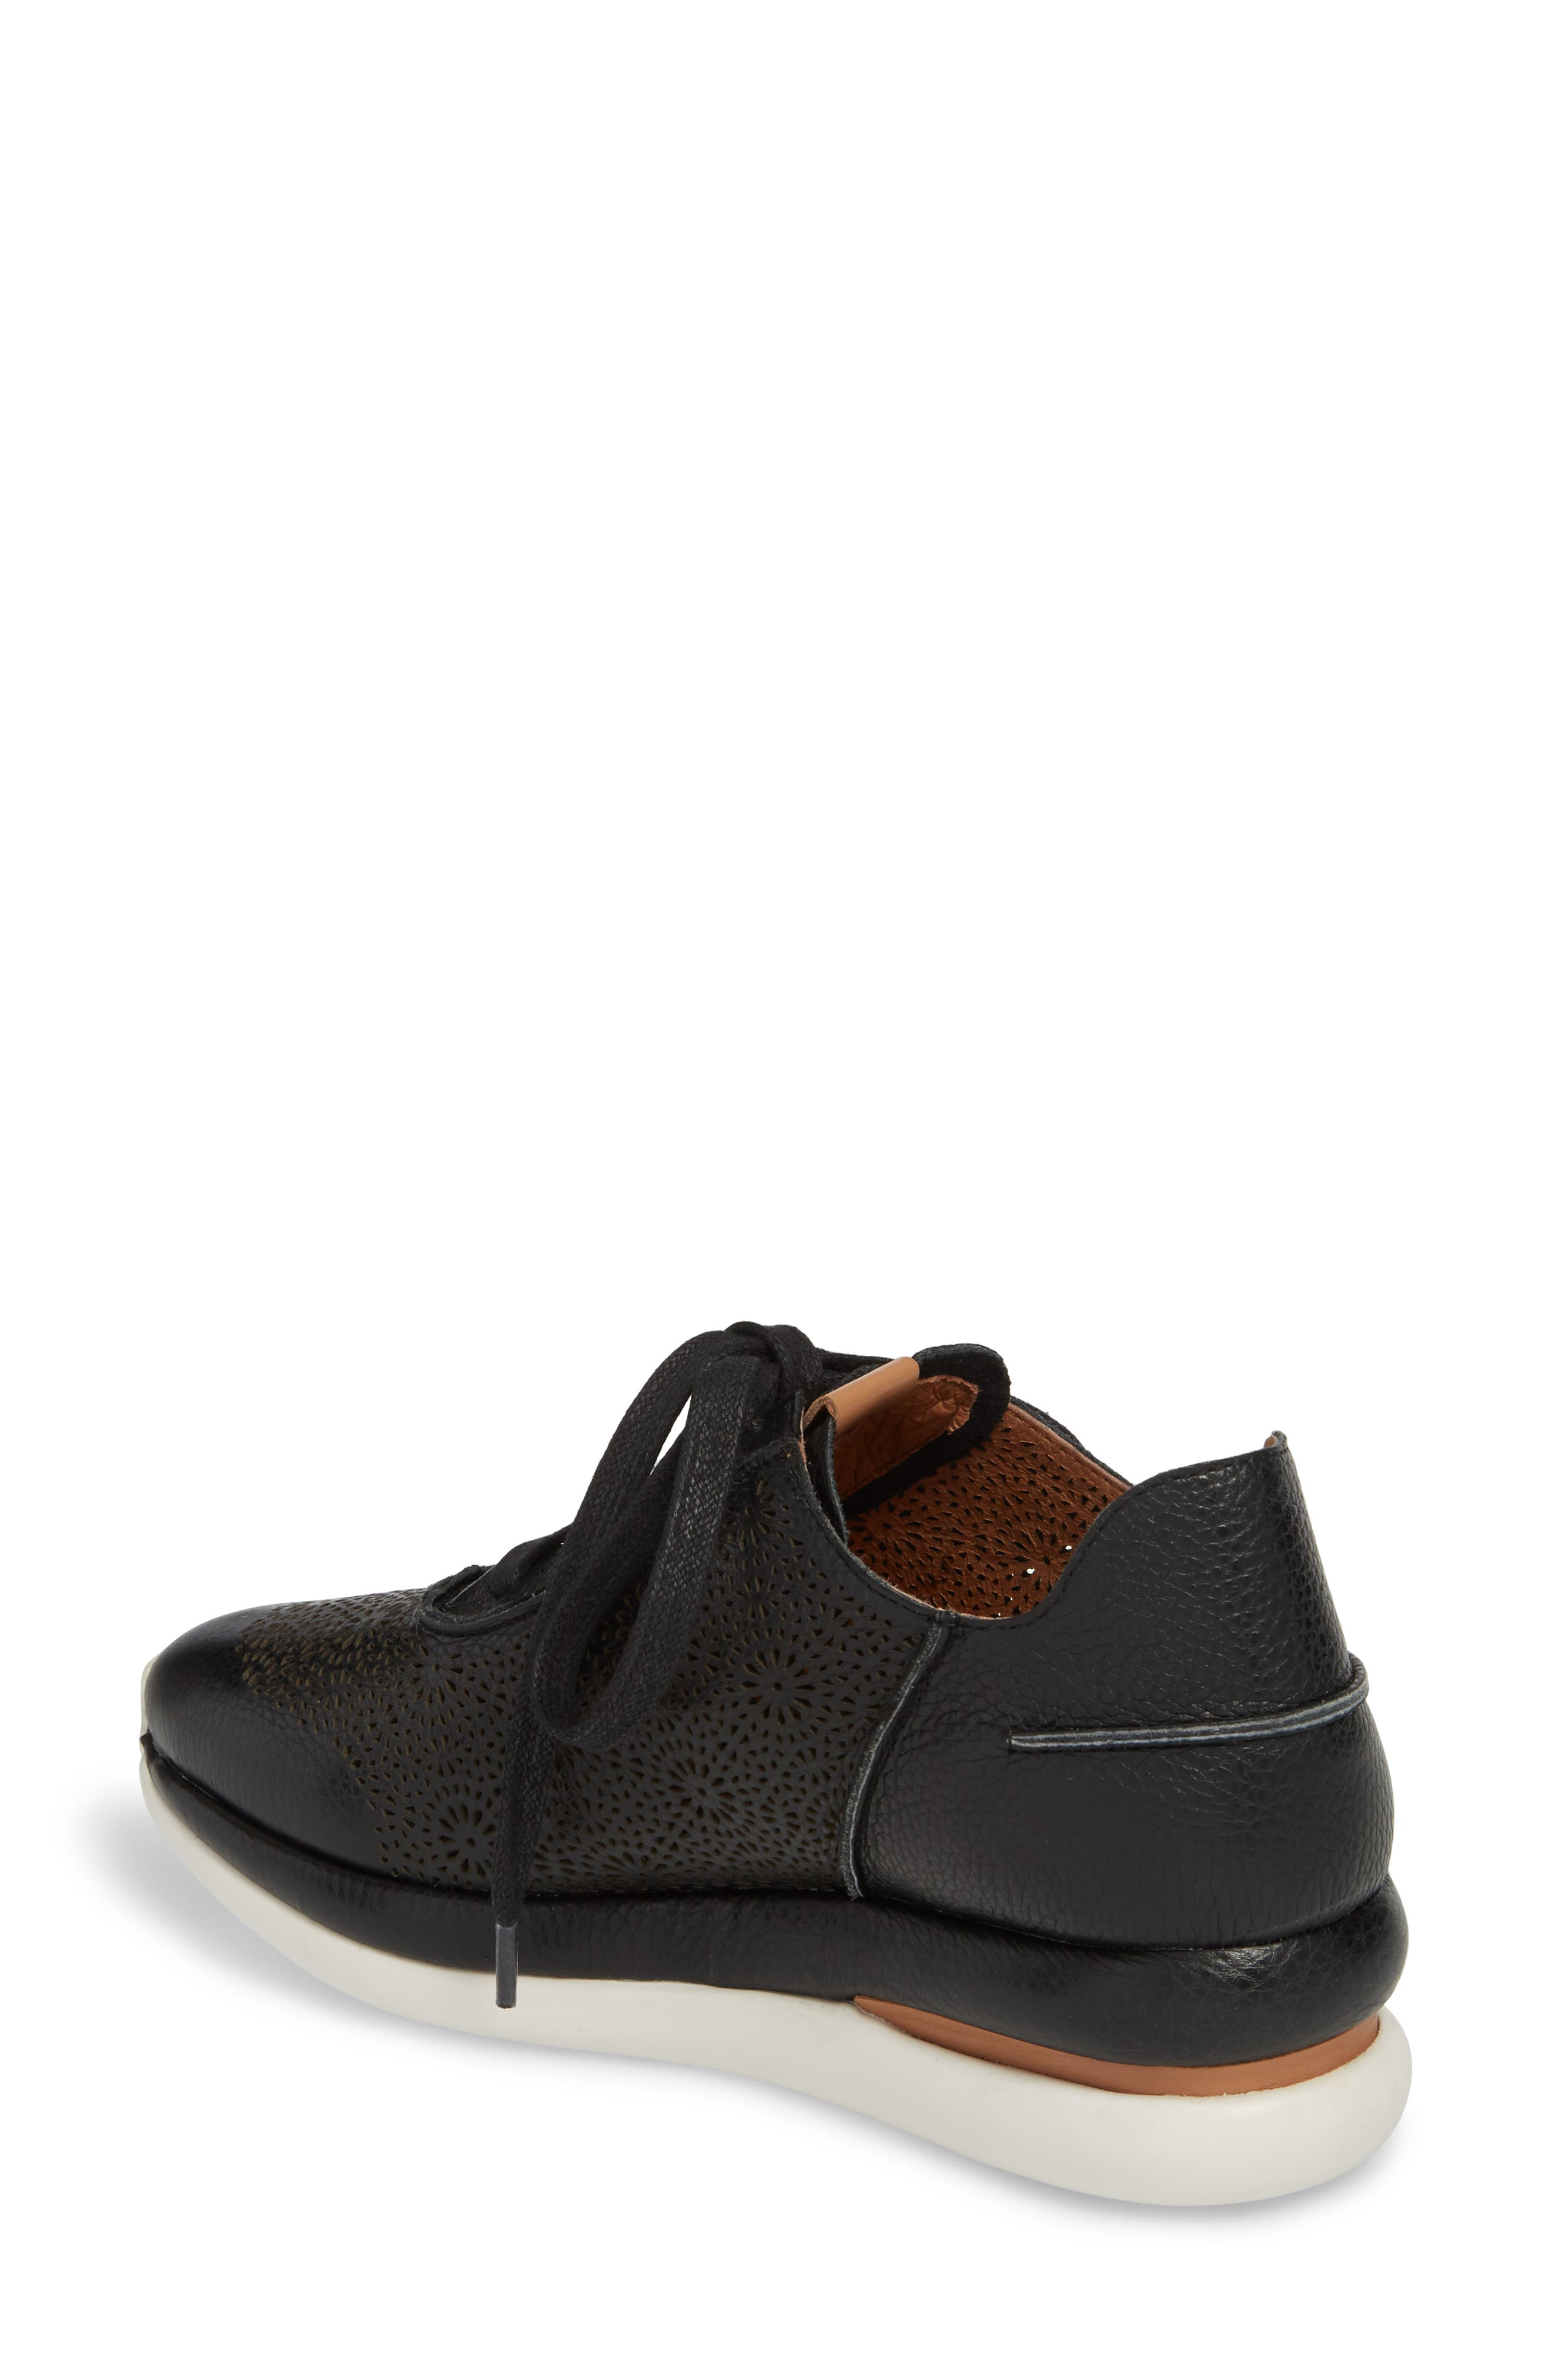 GENTLE SOULS BY KENNETH COLE, Raina II Sneaker, Alternate thumbnail 2, color, BLACK LEATHER